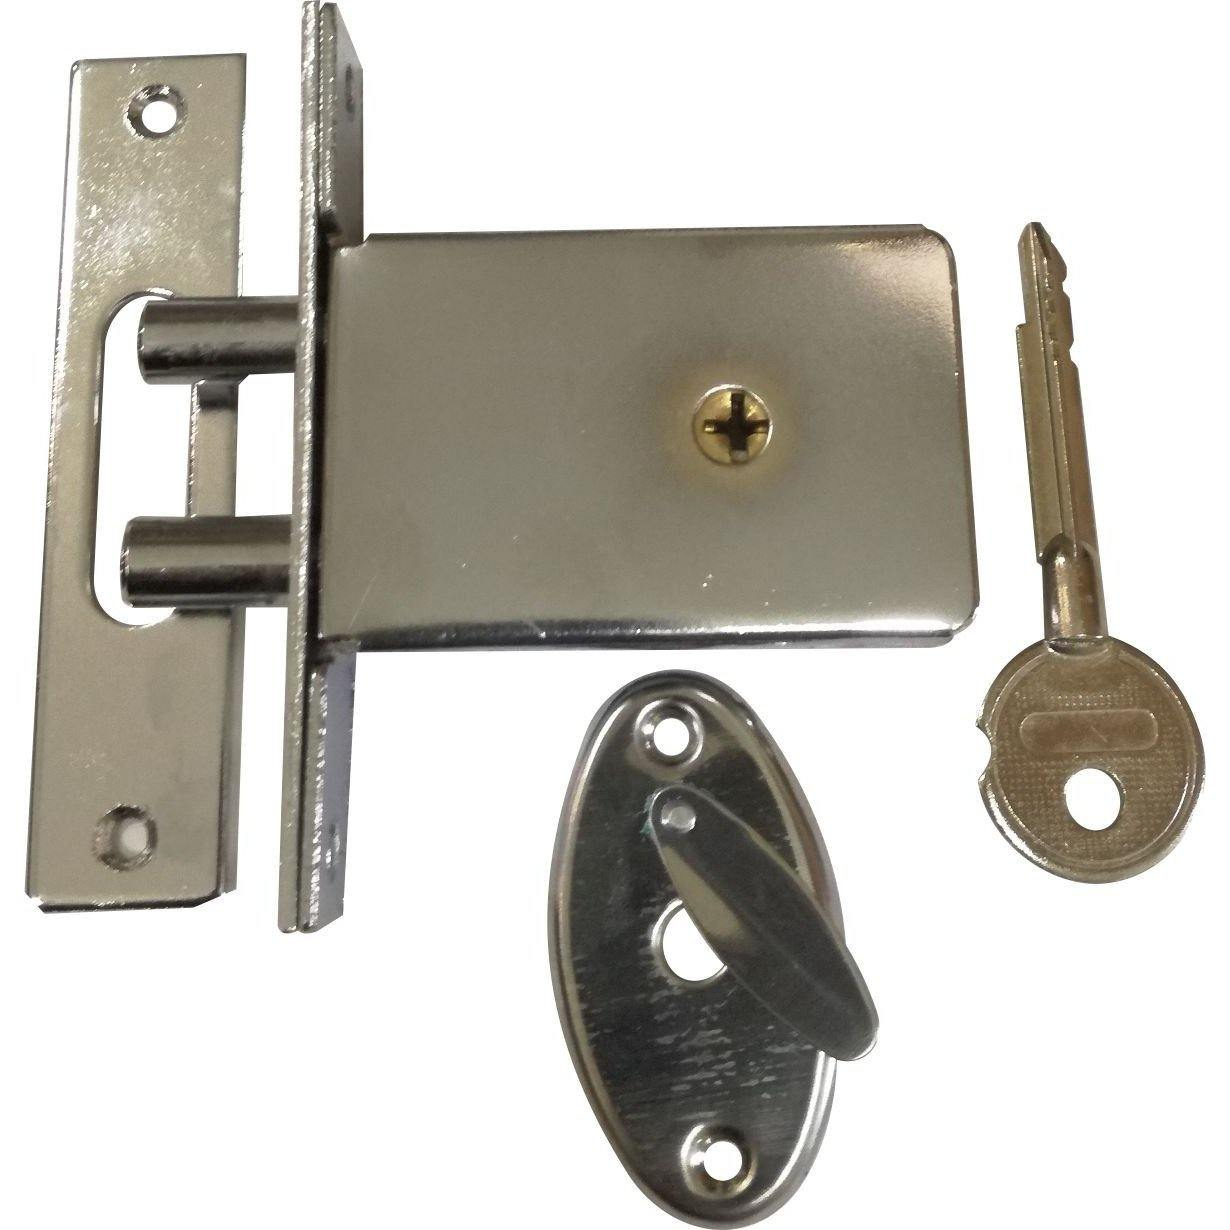 Two Pin Security Lock with Star Key